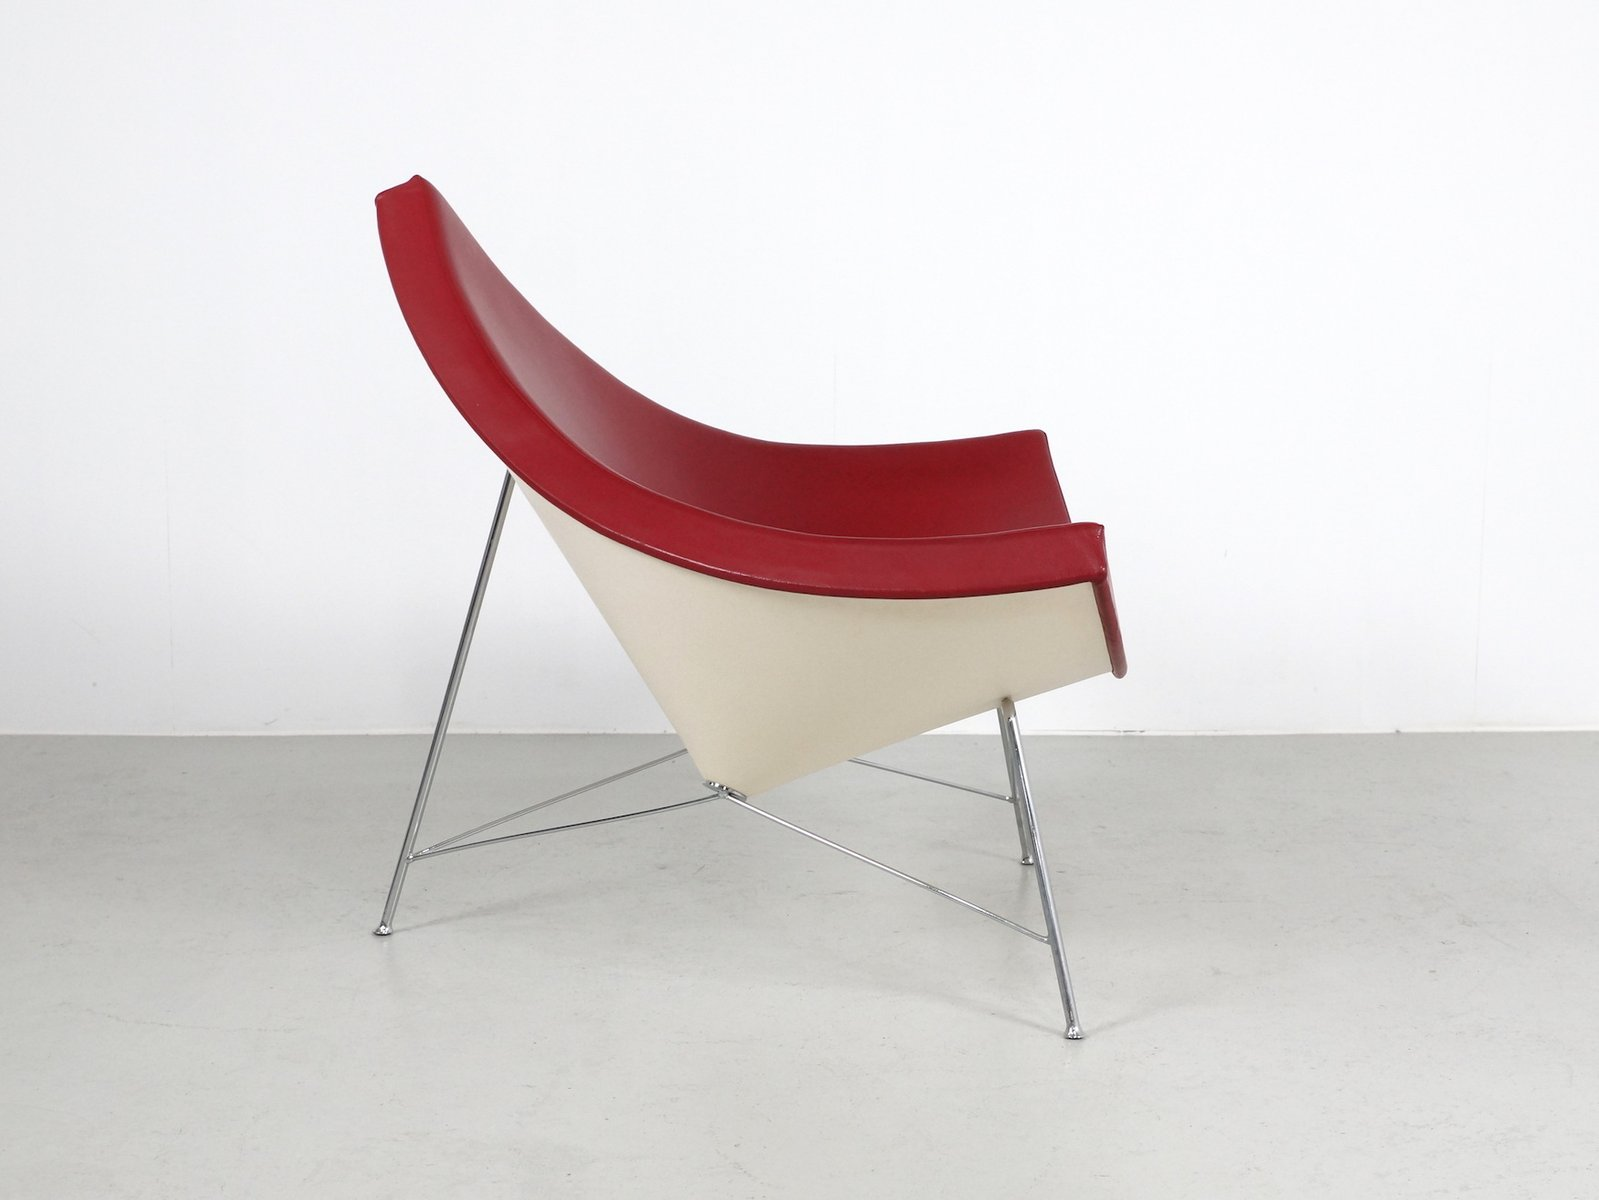 vintage oxblood red leather coconut chair by george nelson for vitra for sale at pamono. Black Bedroom Furniture Sets. Home Design Ideas